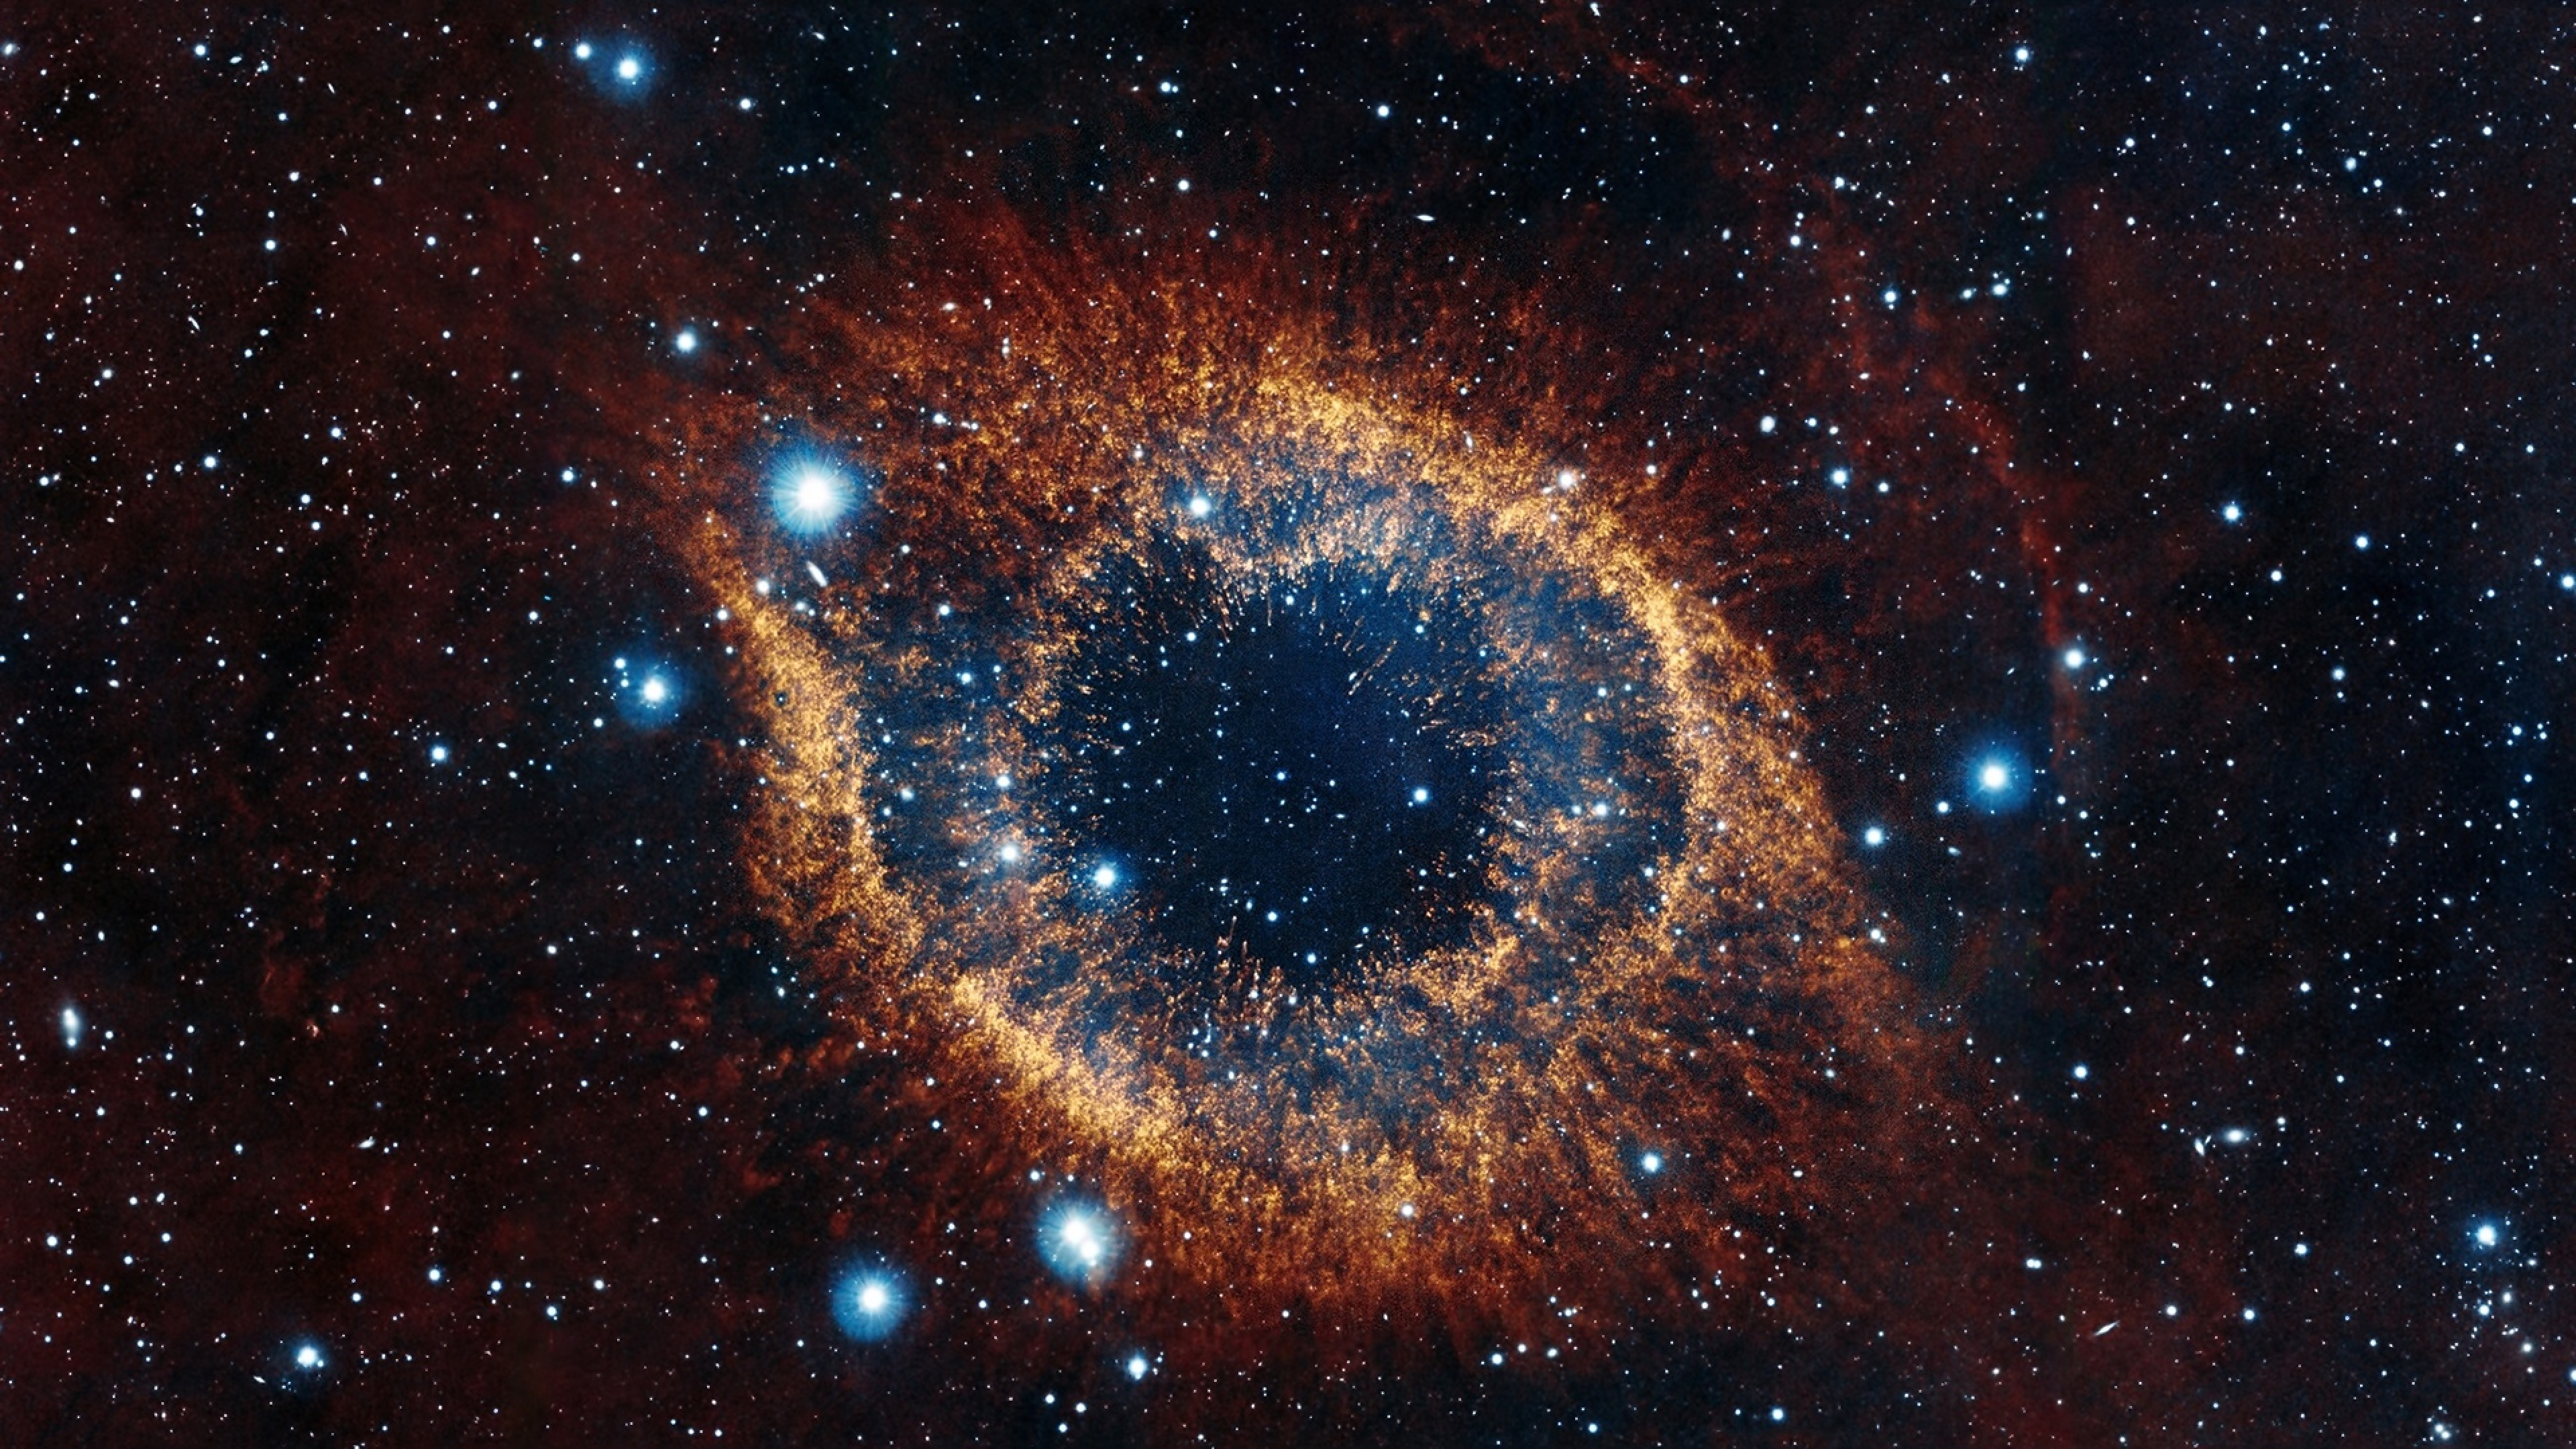 3840x2160 helix nebula, space, stars 4K Wallpaper, HD Space 4K Wallpapers, Images, Photos and ...